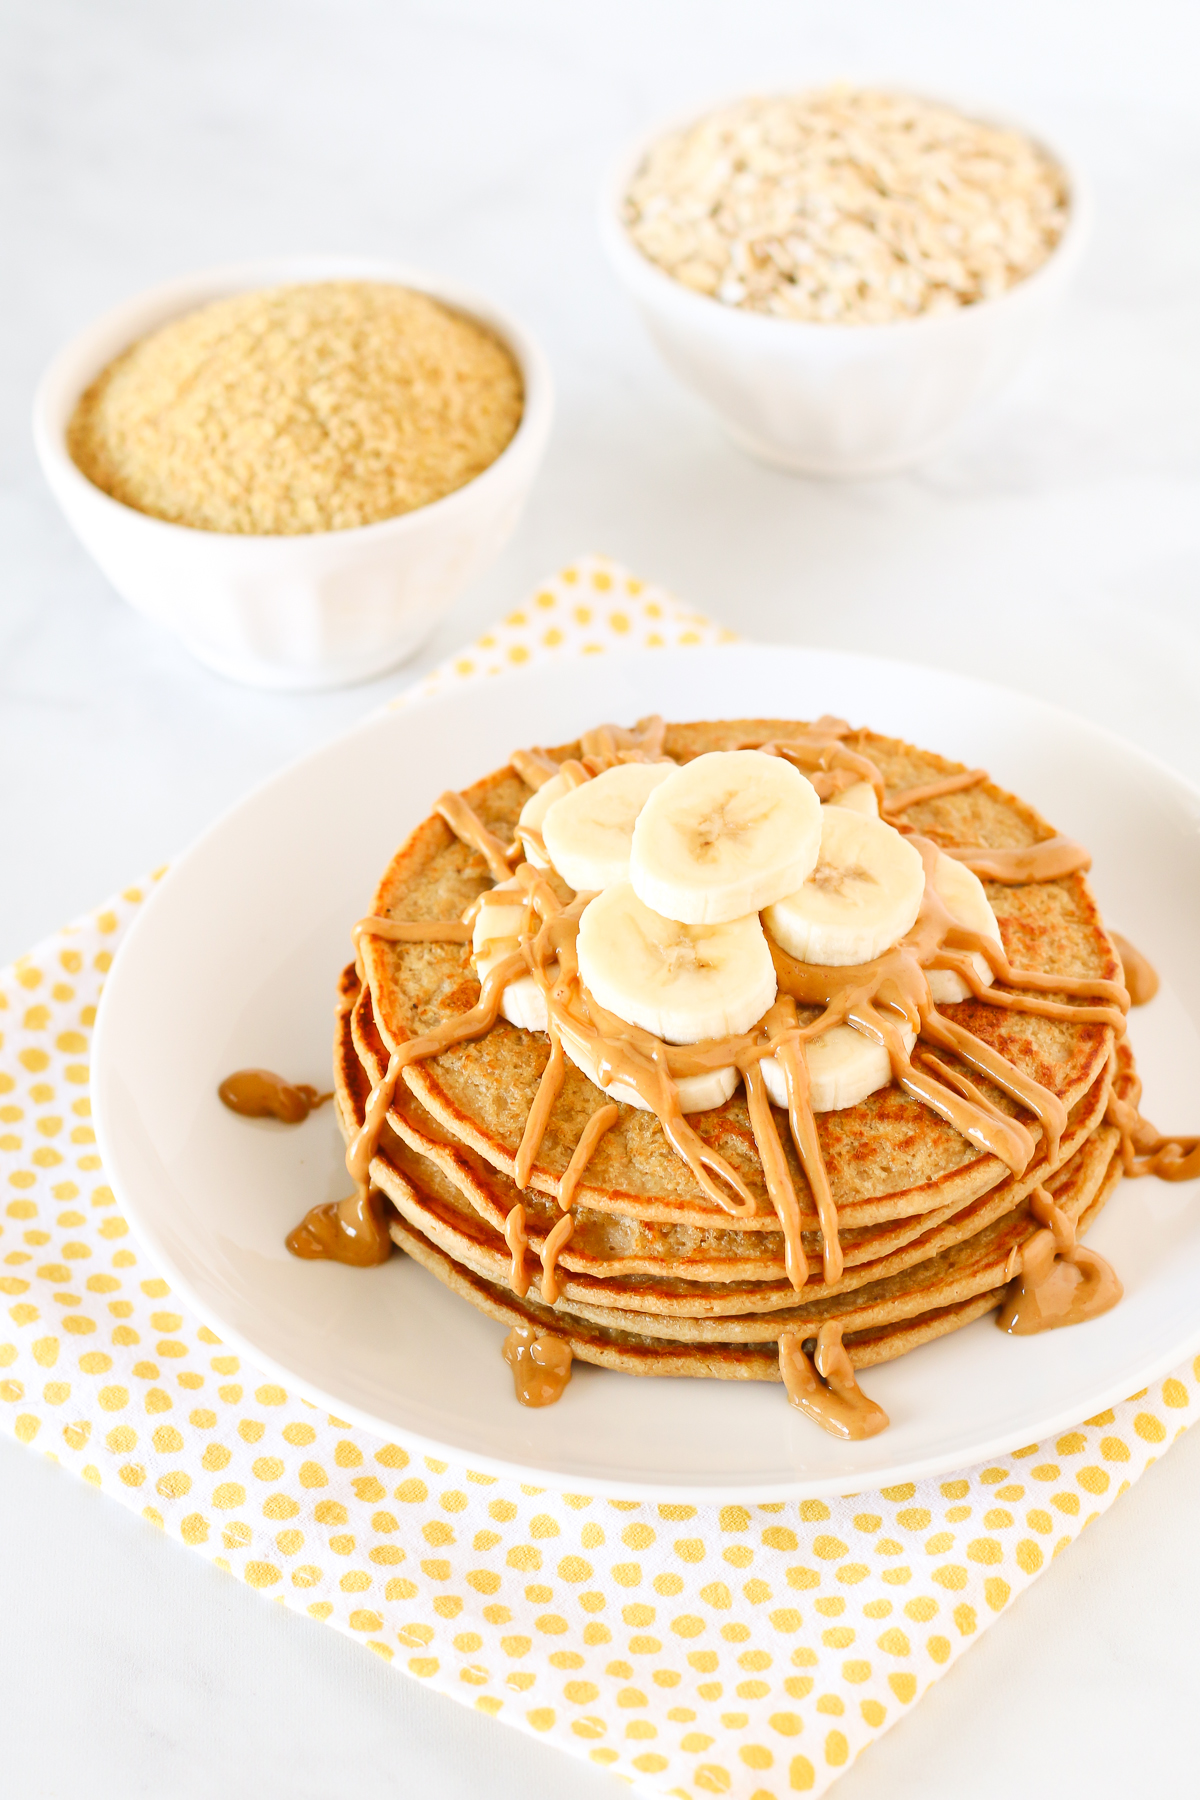 Gluten Free Vegan Blender Pancakes. A quick and easy pancake batter, made in the blender and ready in minutes. Great for those busy mornings!